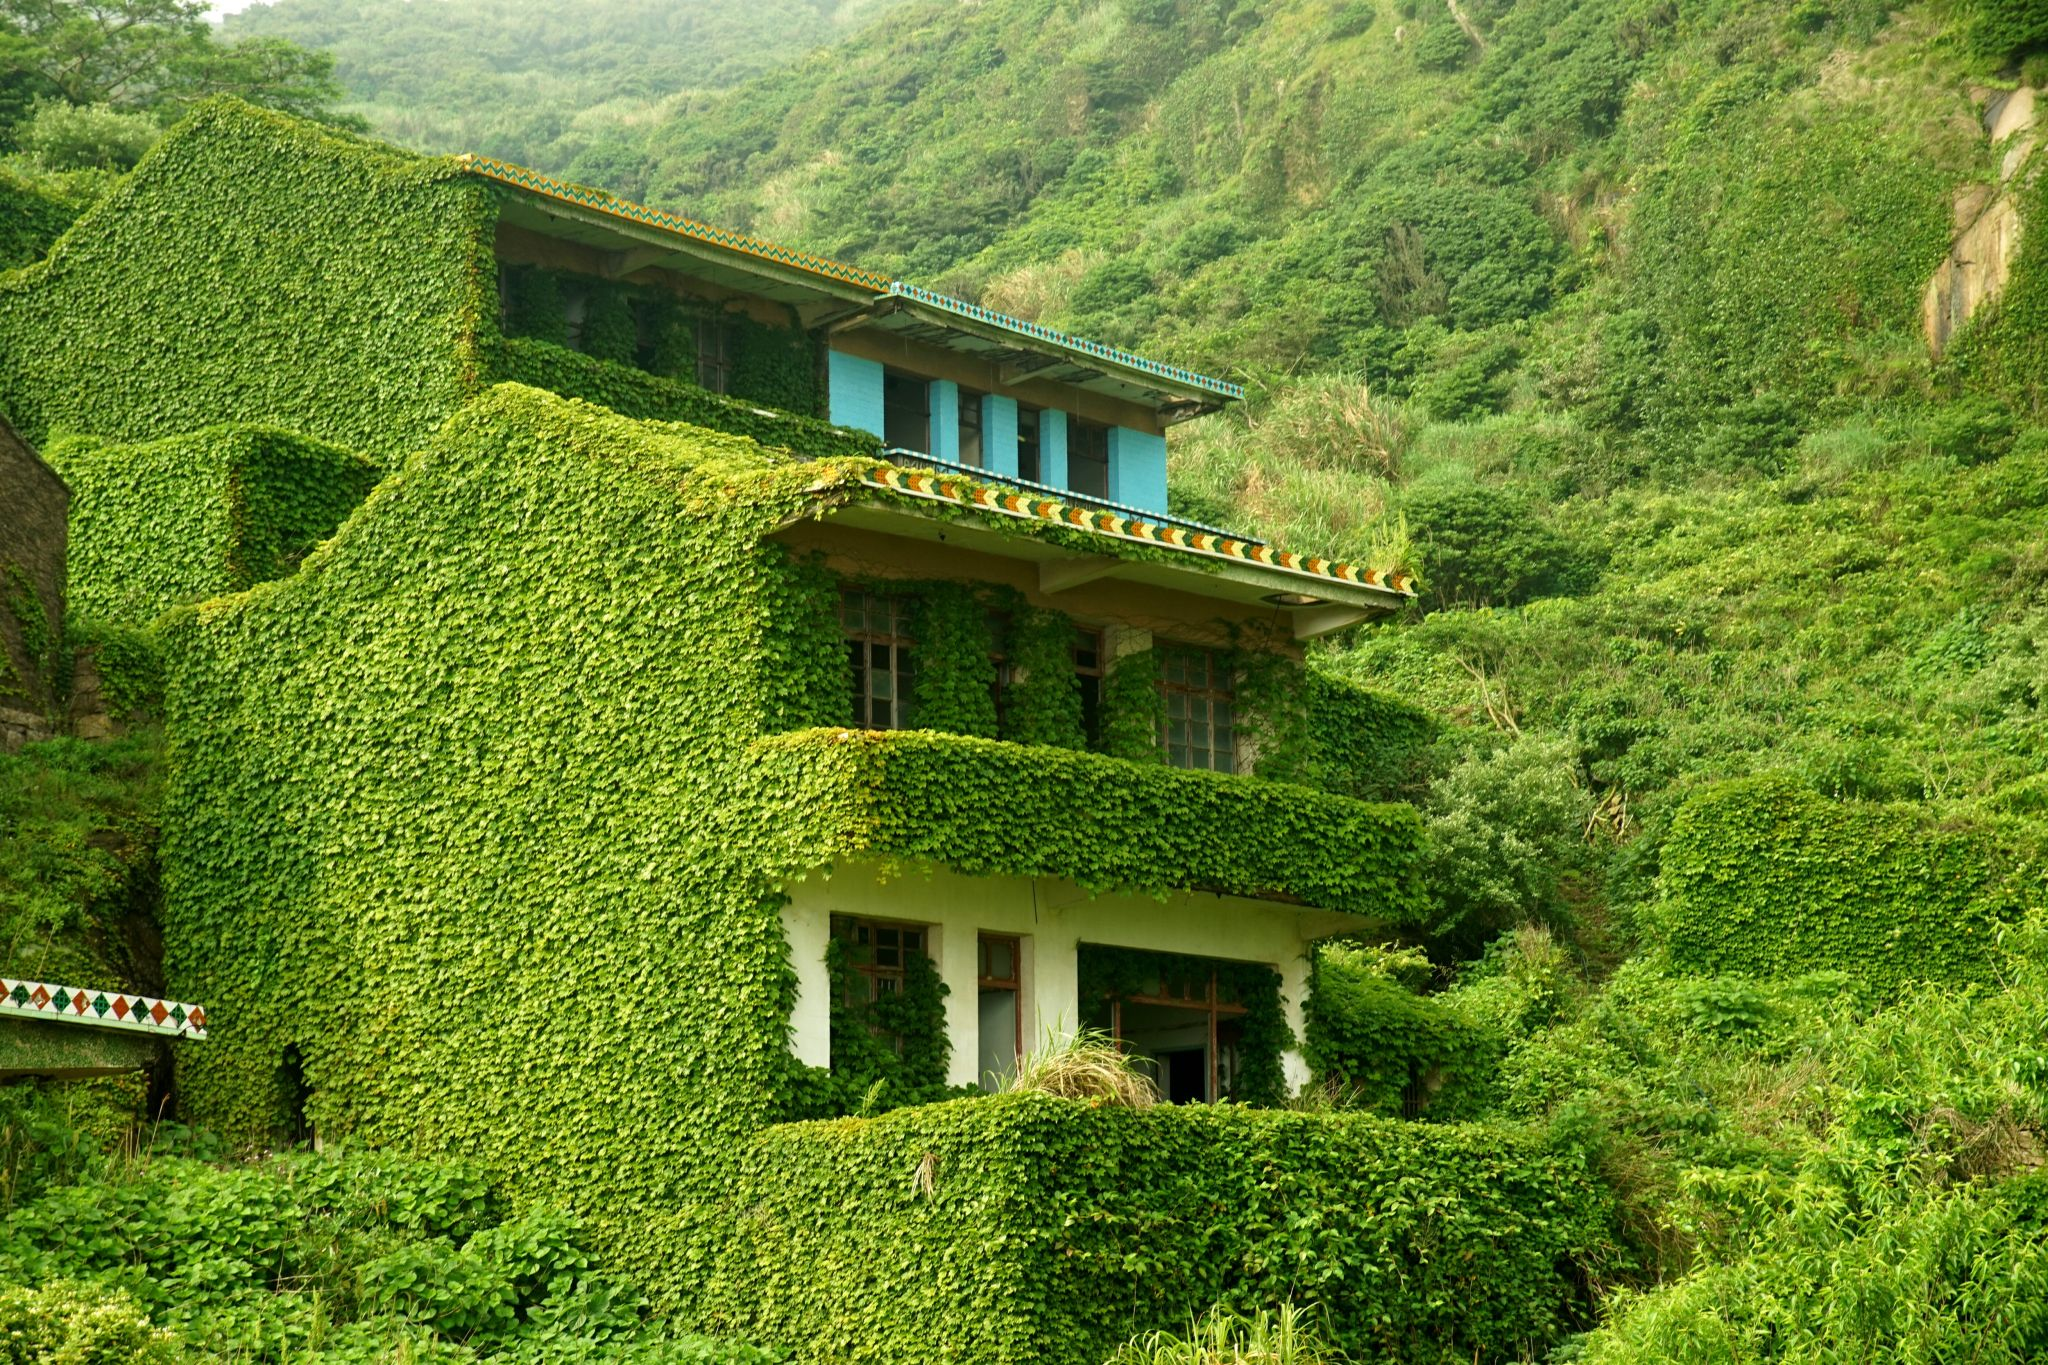 Go Inside The Abandoned Chinese Village That Nature Is Taking Back One House At A Time